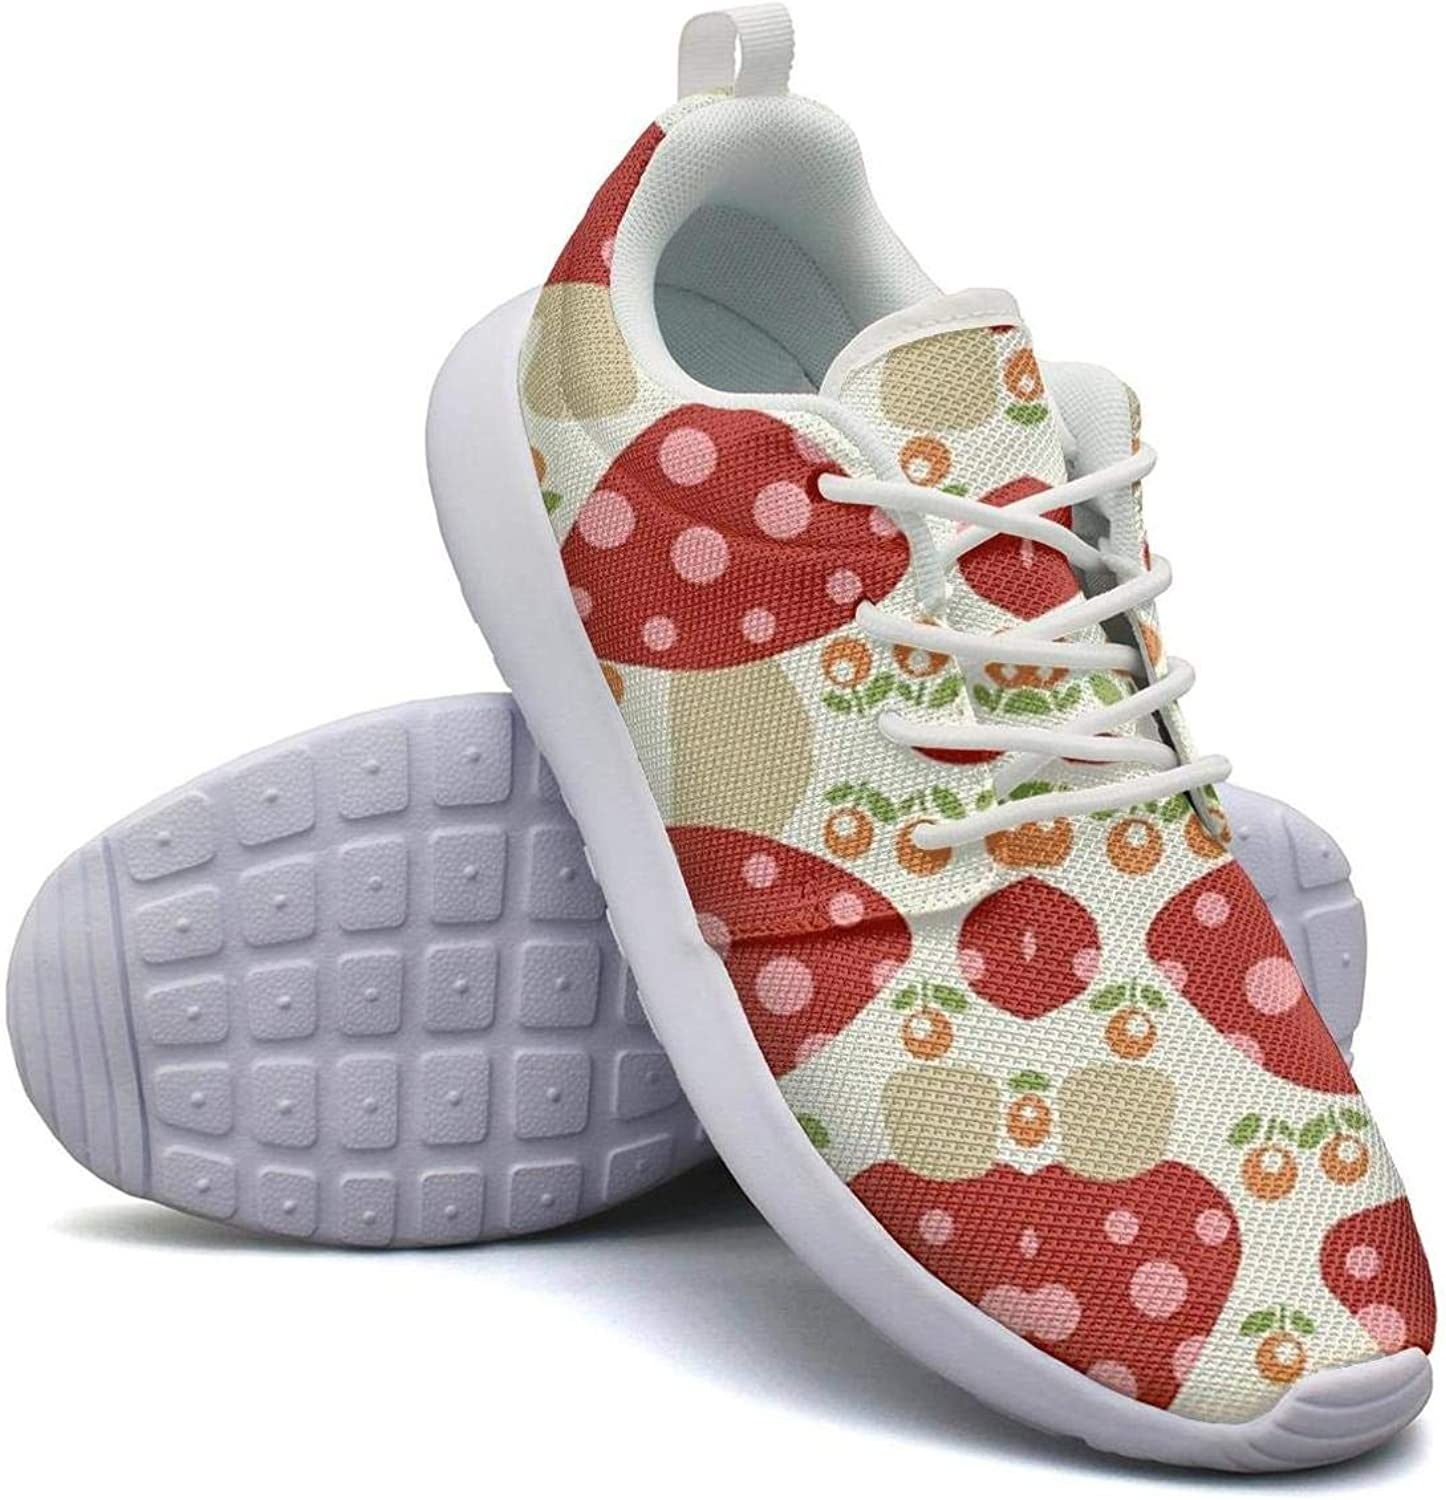 CHALi99 Fashion Womens Lightweight Mesh shoes Argyle Mushrooms Sneakers Walking Lace-Up